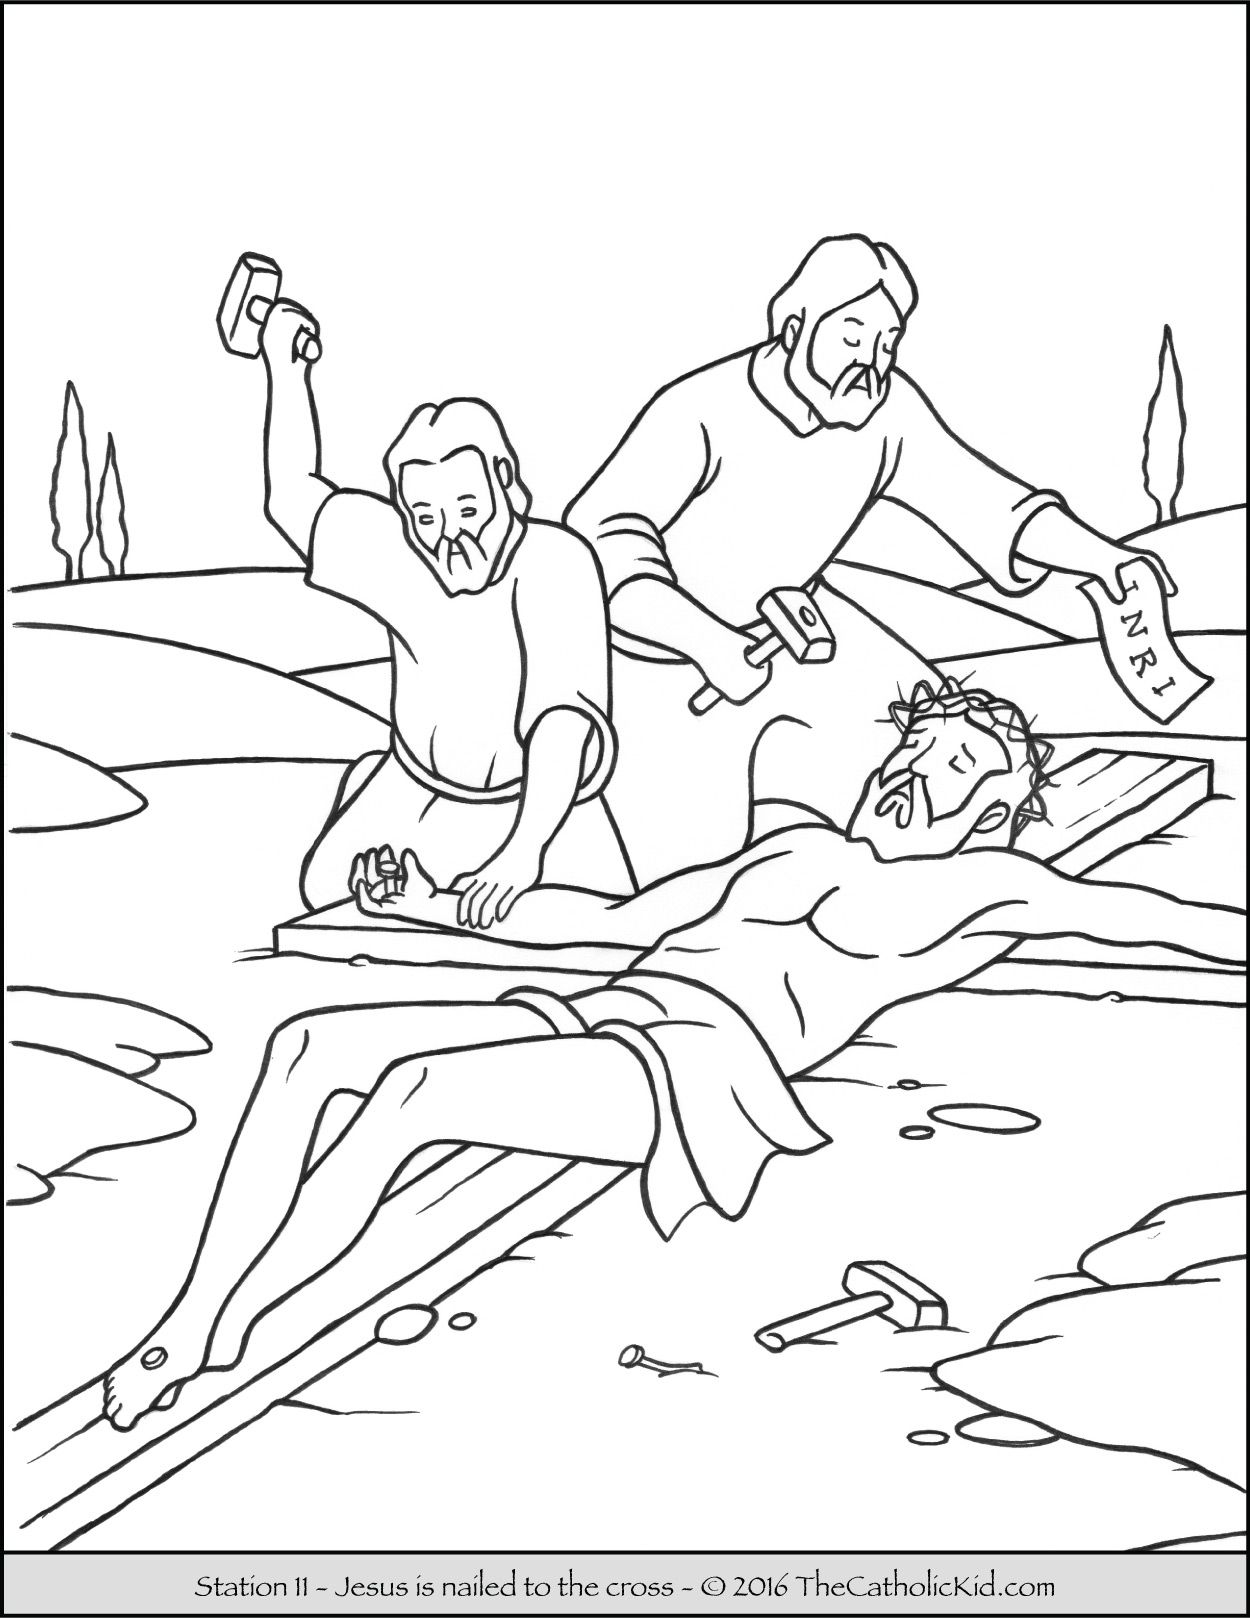 stations of the cross coloring pages 11 jesus is nailed to the